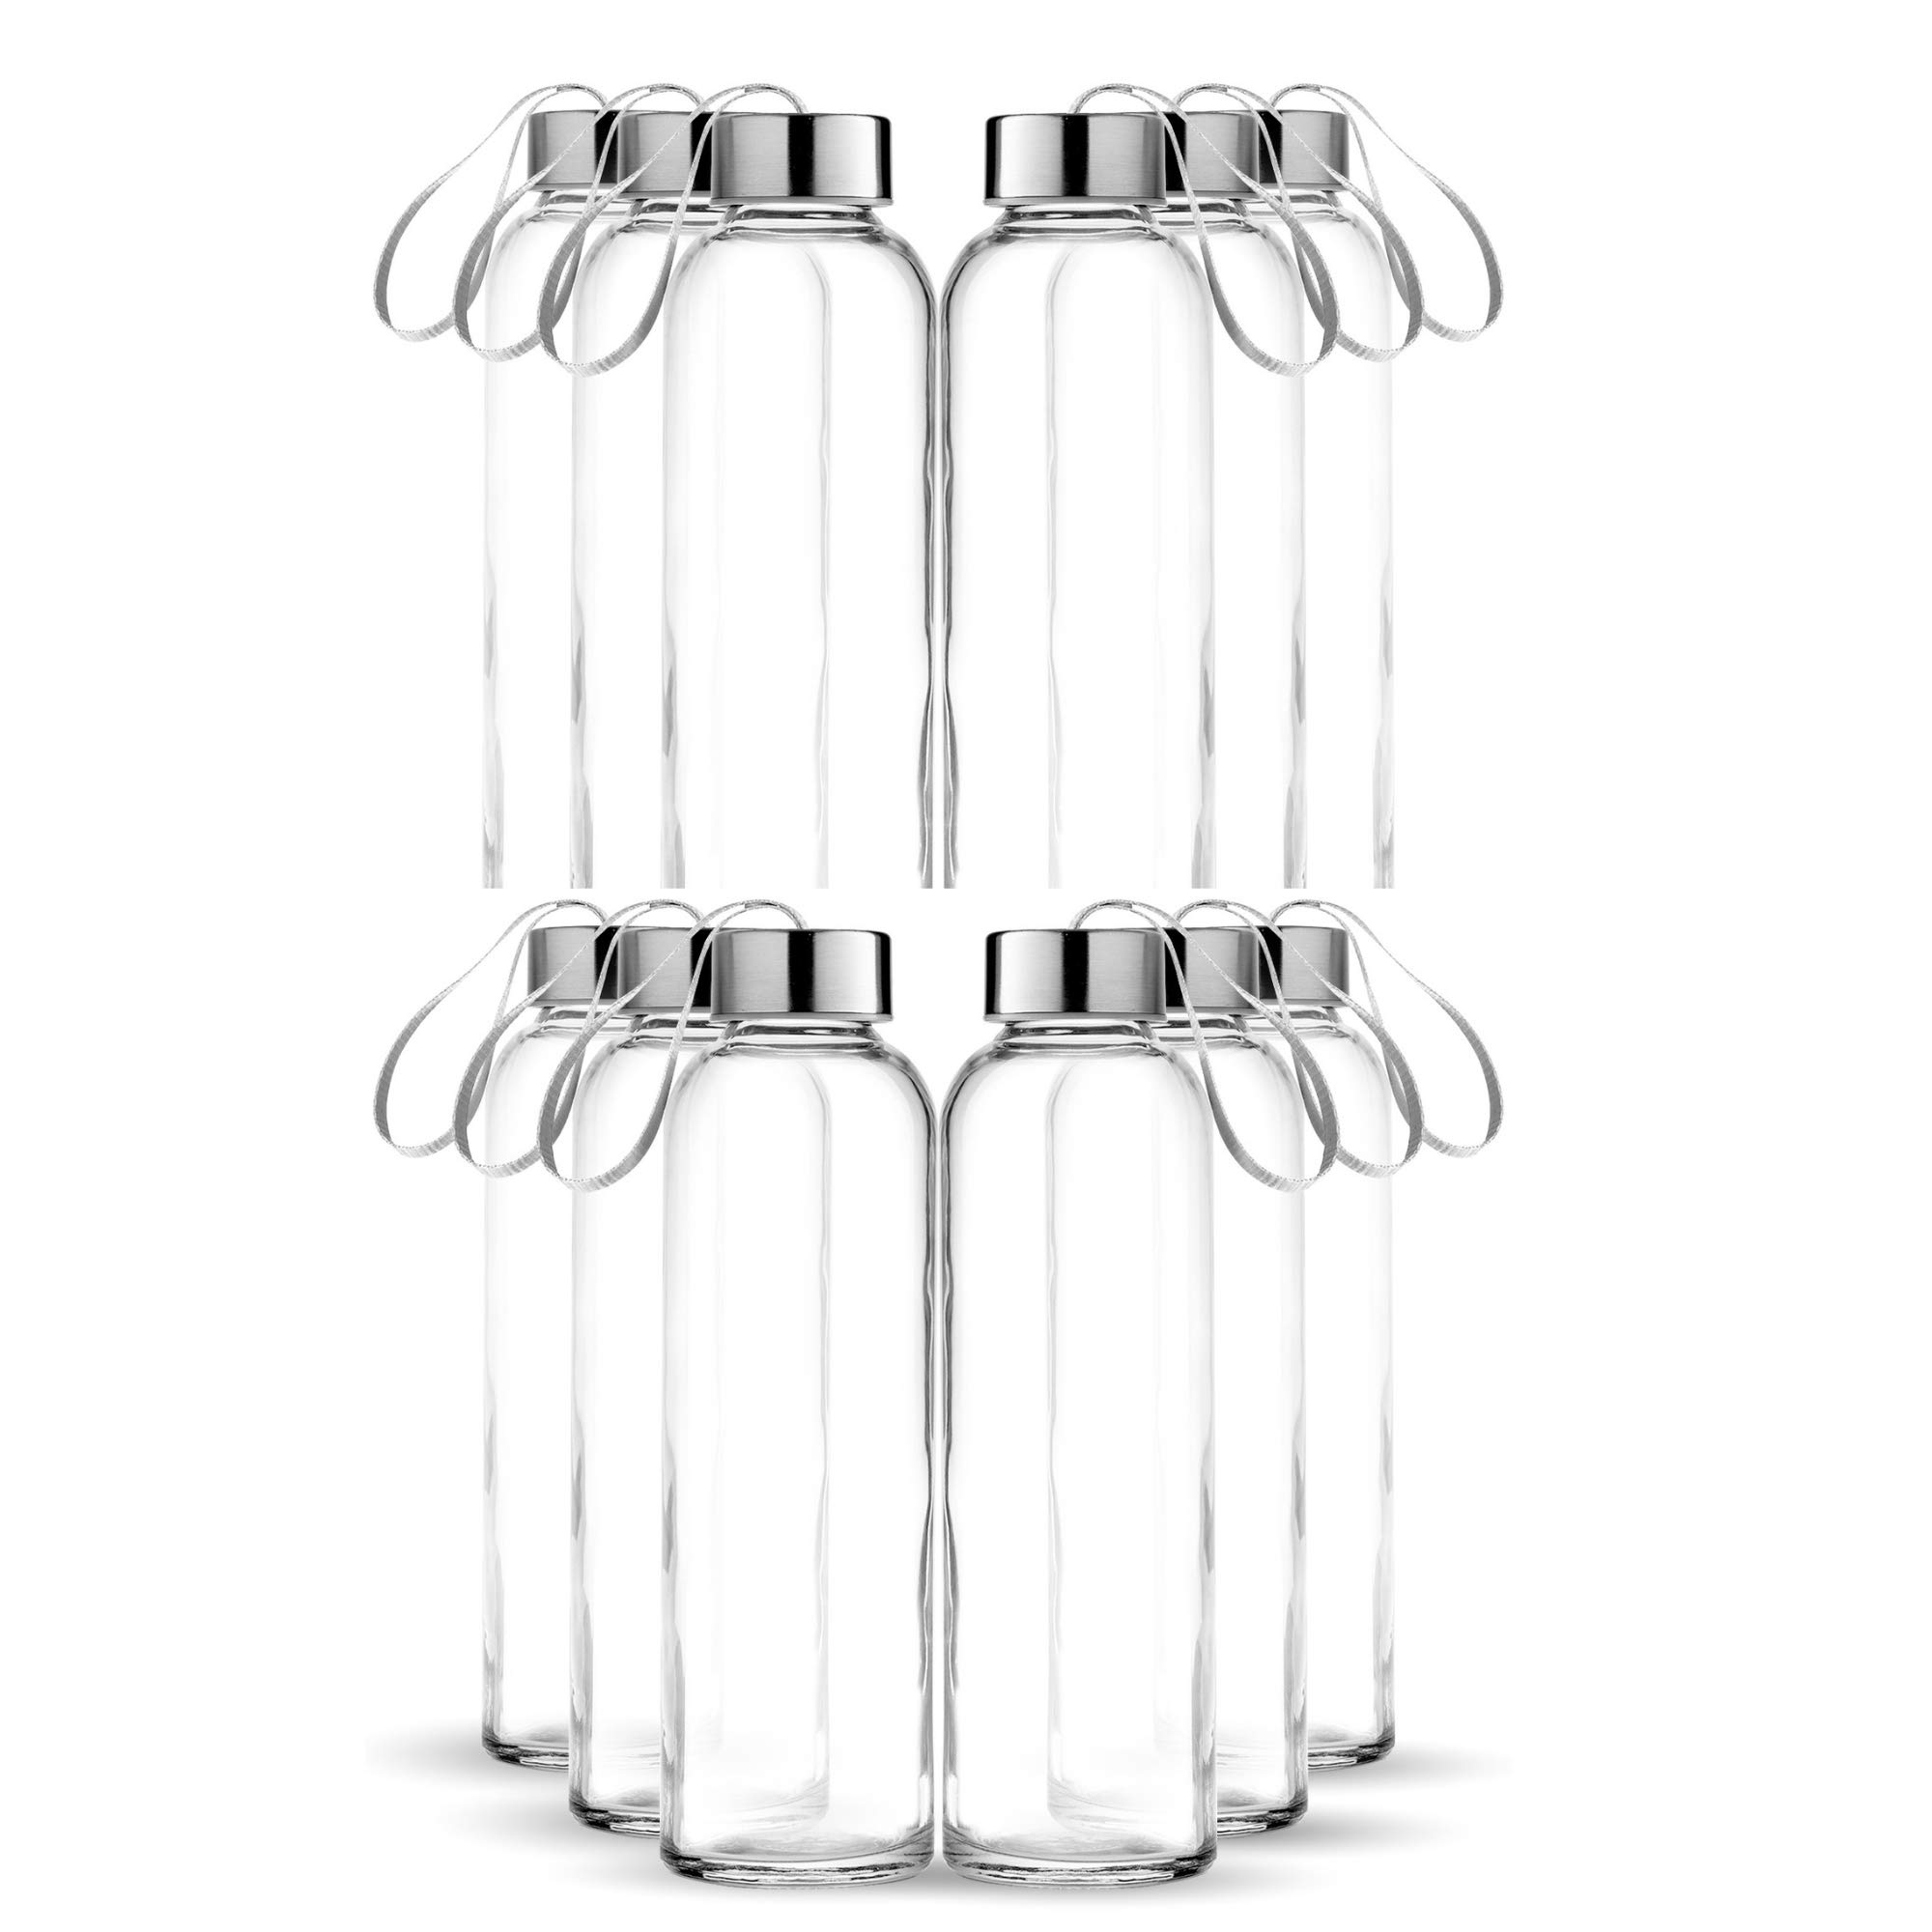 Chef's Star Glass Water Bottle 12 Pack 18oz Bottles for Beverages and Juicer Use Stainless Steel Leak Proof Caps with Carrying Loop - Including 12 Black Nylon Protection Sleeve